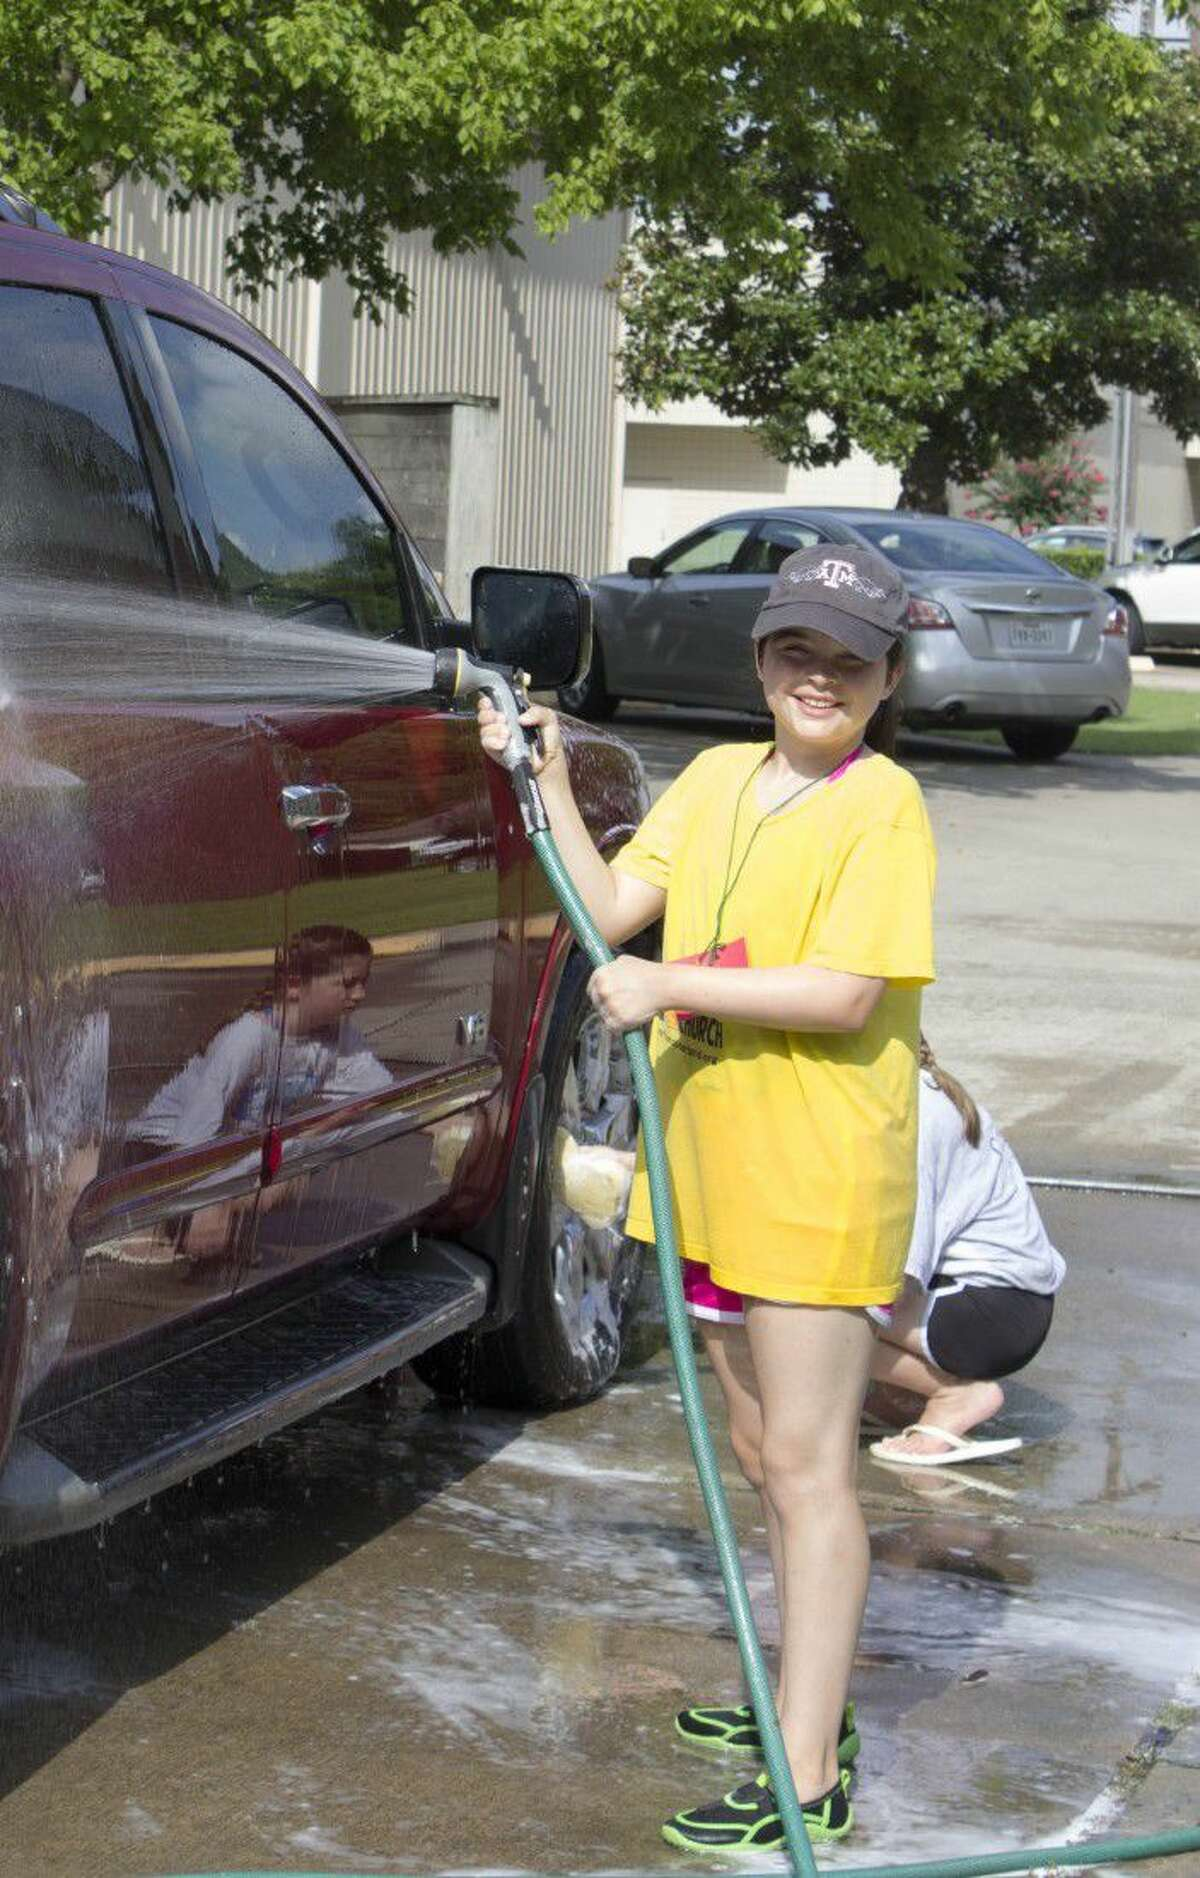 Rinsing the washed cars was also a good way to cool off.